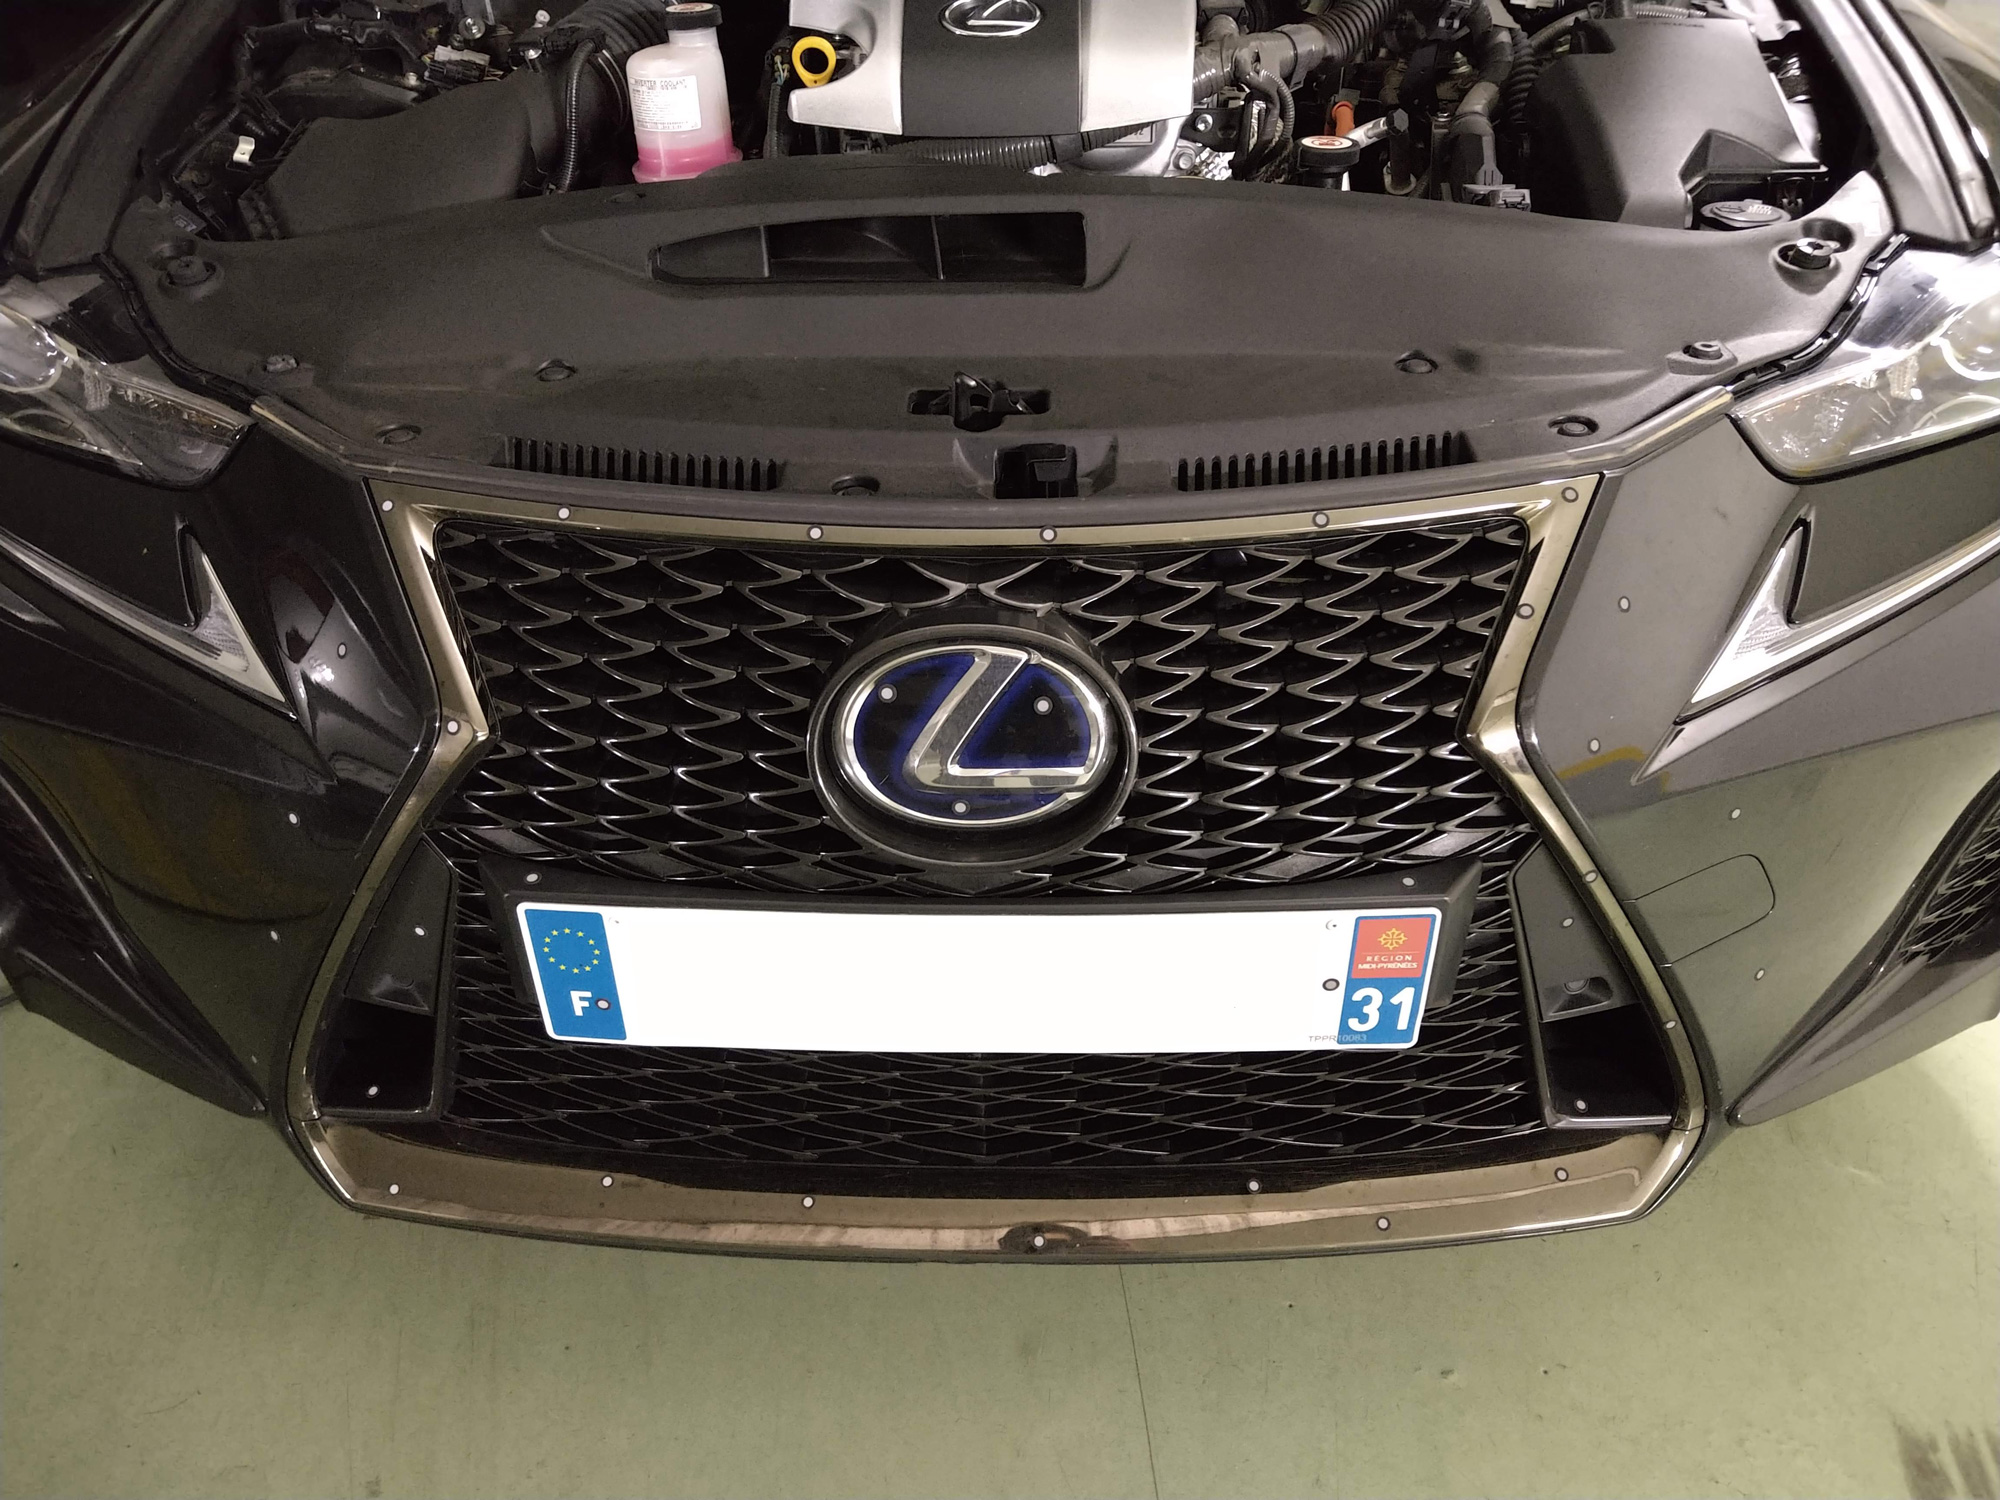 Lexus car grille with markers